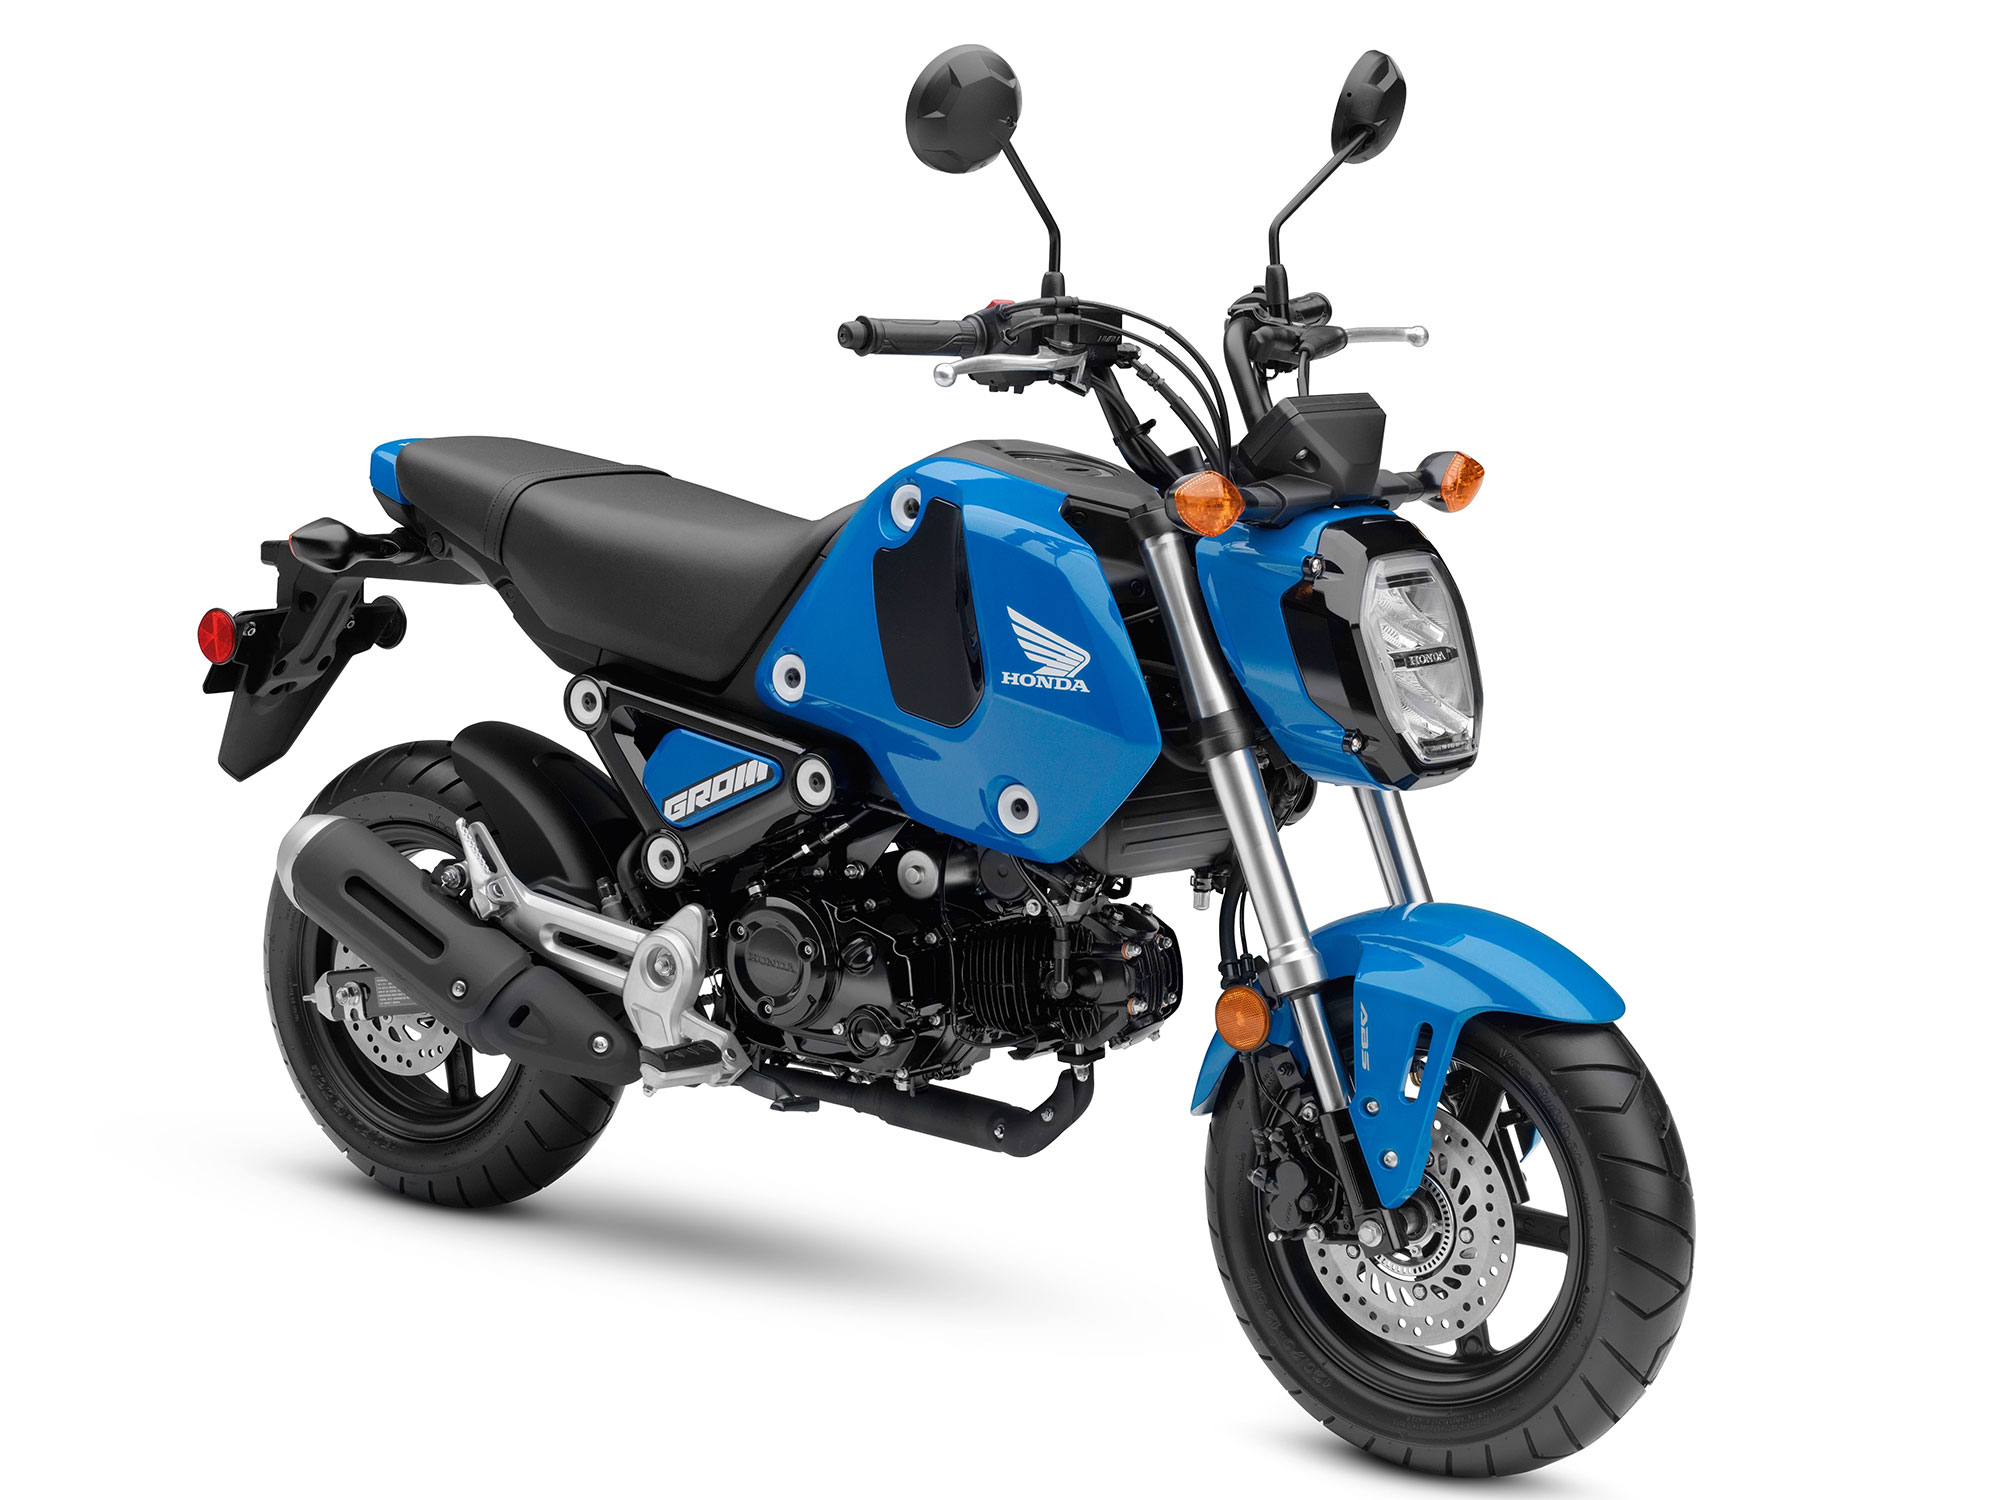 A fronA side view of the Honda Grom motorcycle